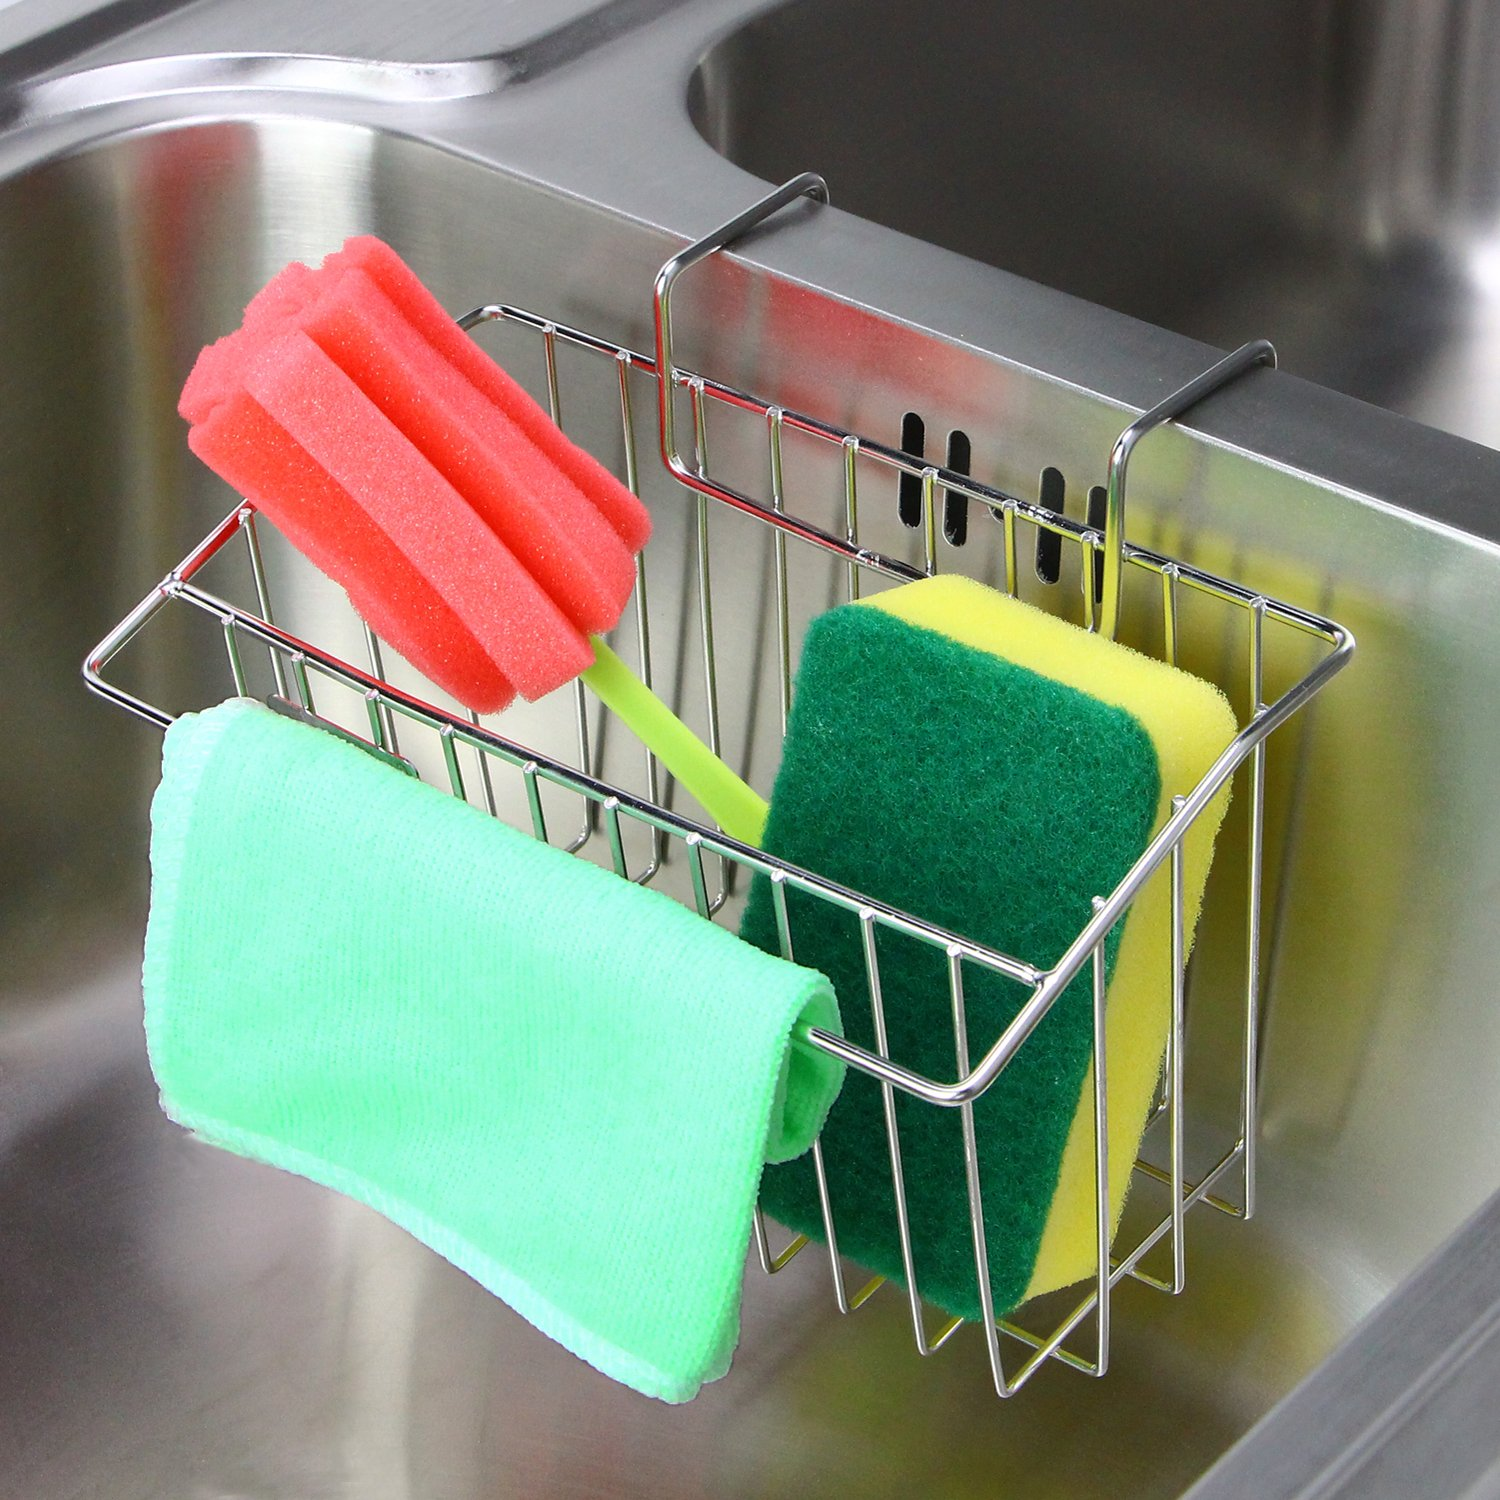 Sponge Holder Aiduy Sink Caddy Kitchen Brush Soap